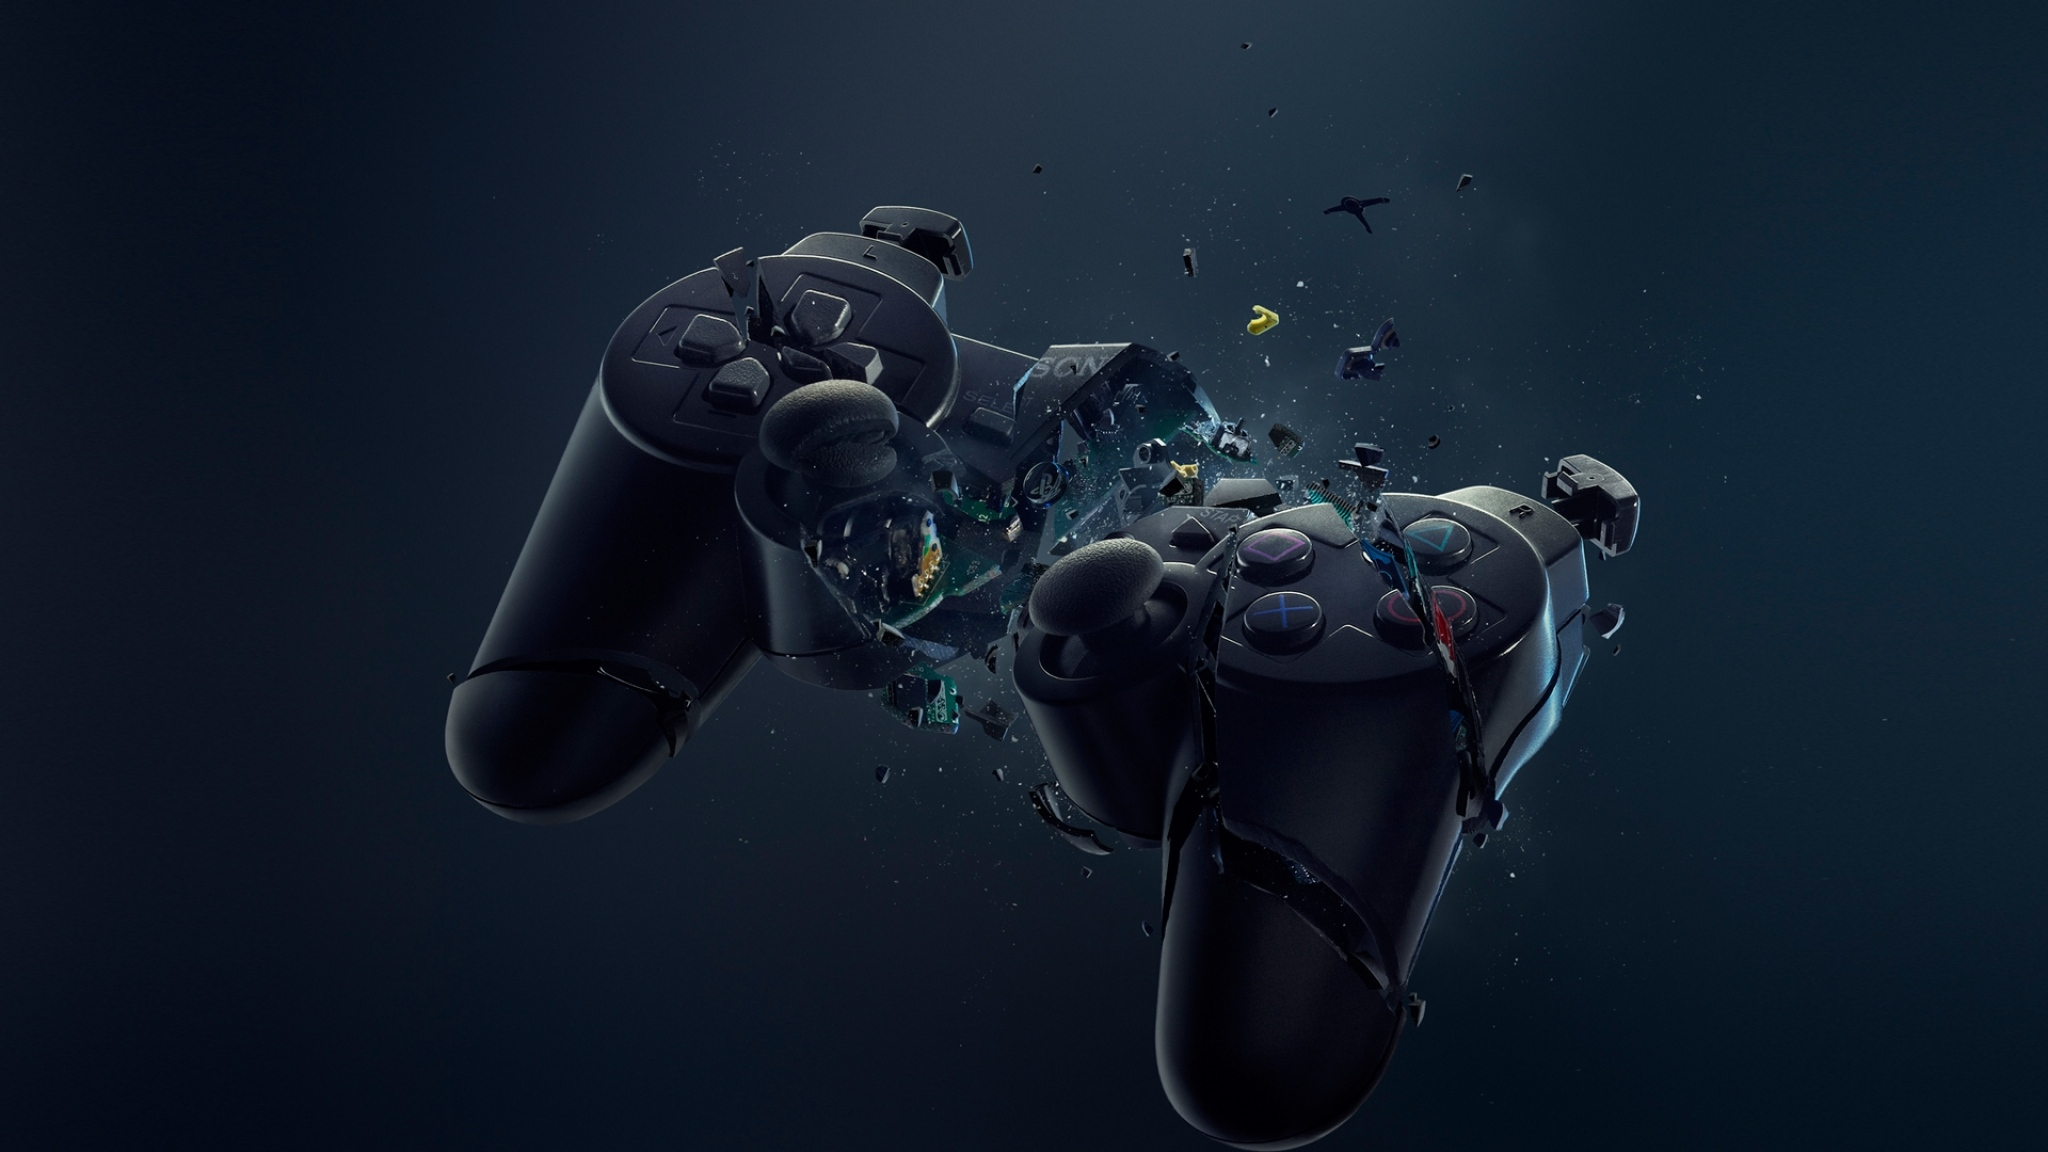 Gamepad Wallpapers High Quality Download Free